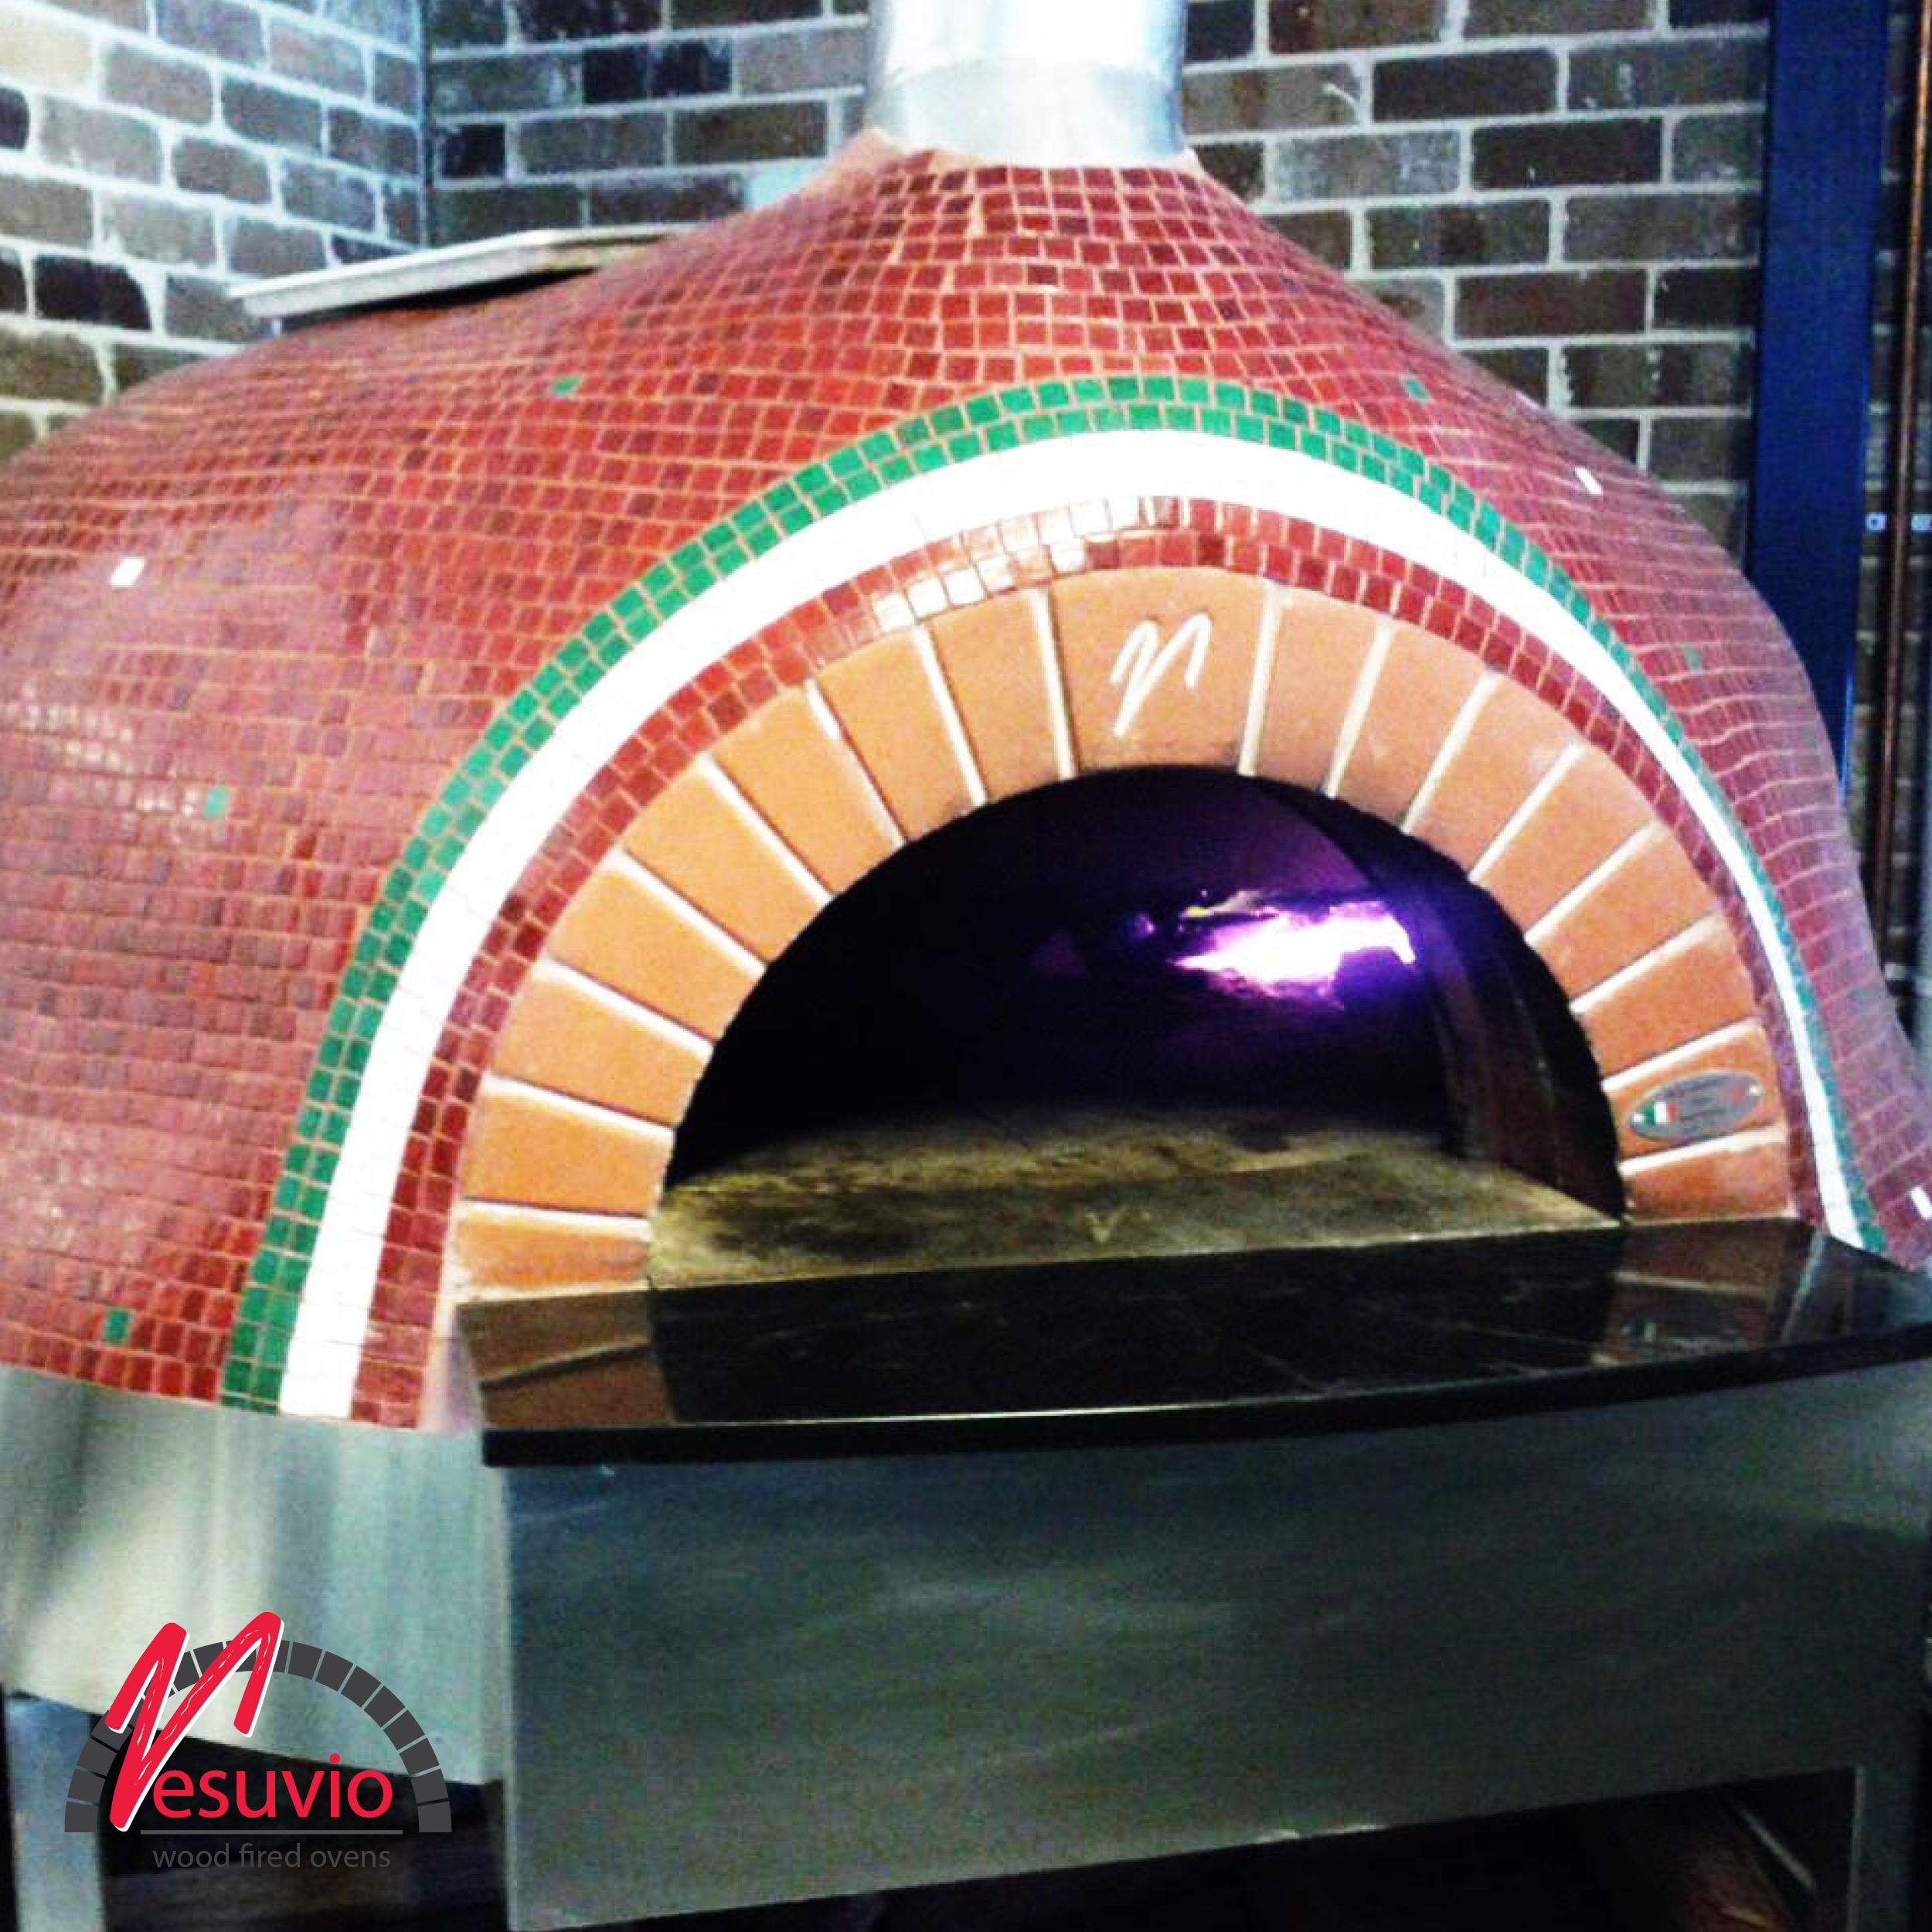 Ovensi Videos Porno commercial ovens photos, pizza ovens, wood fired ovens made